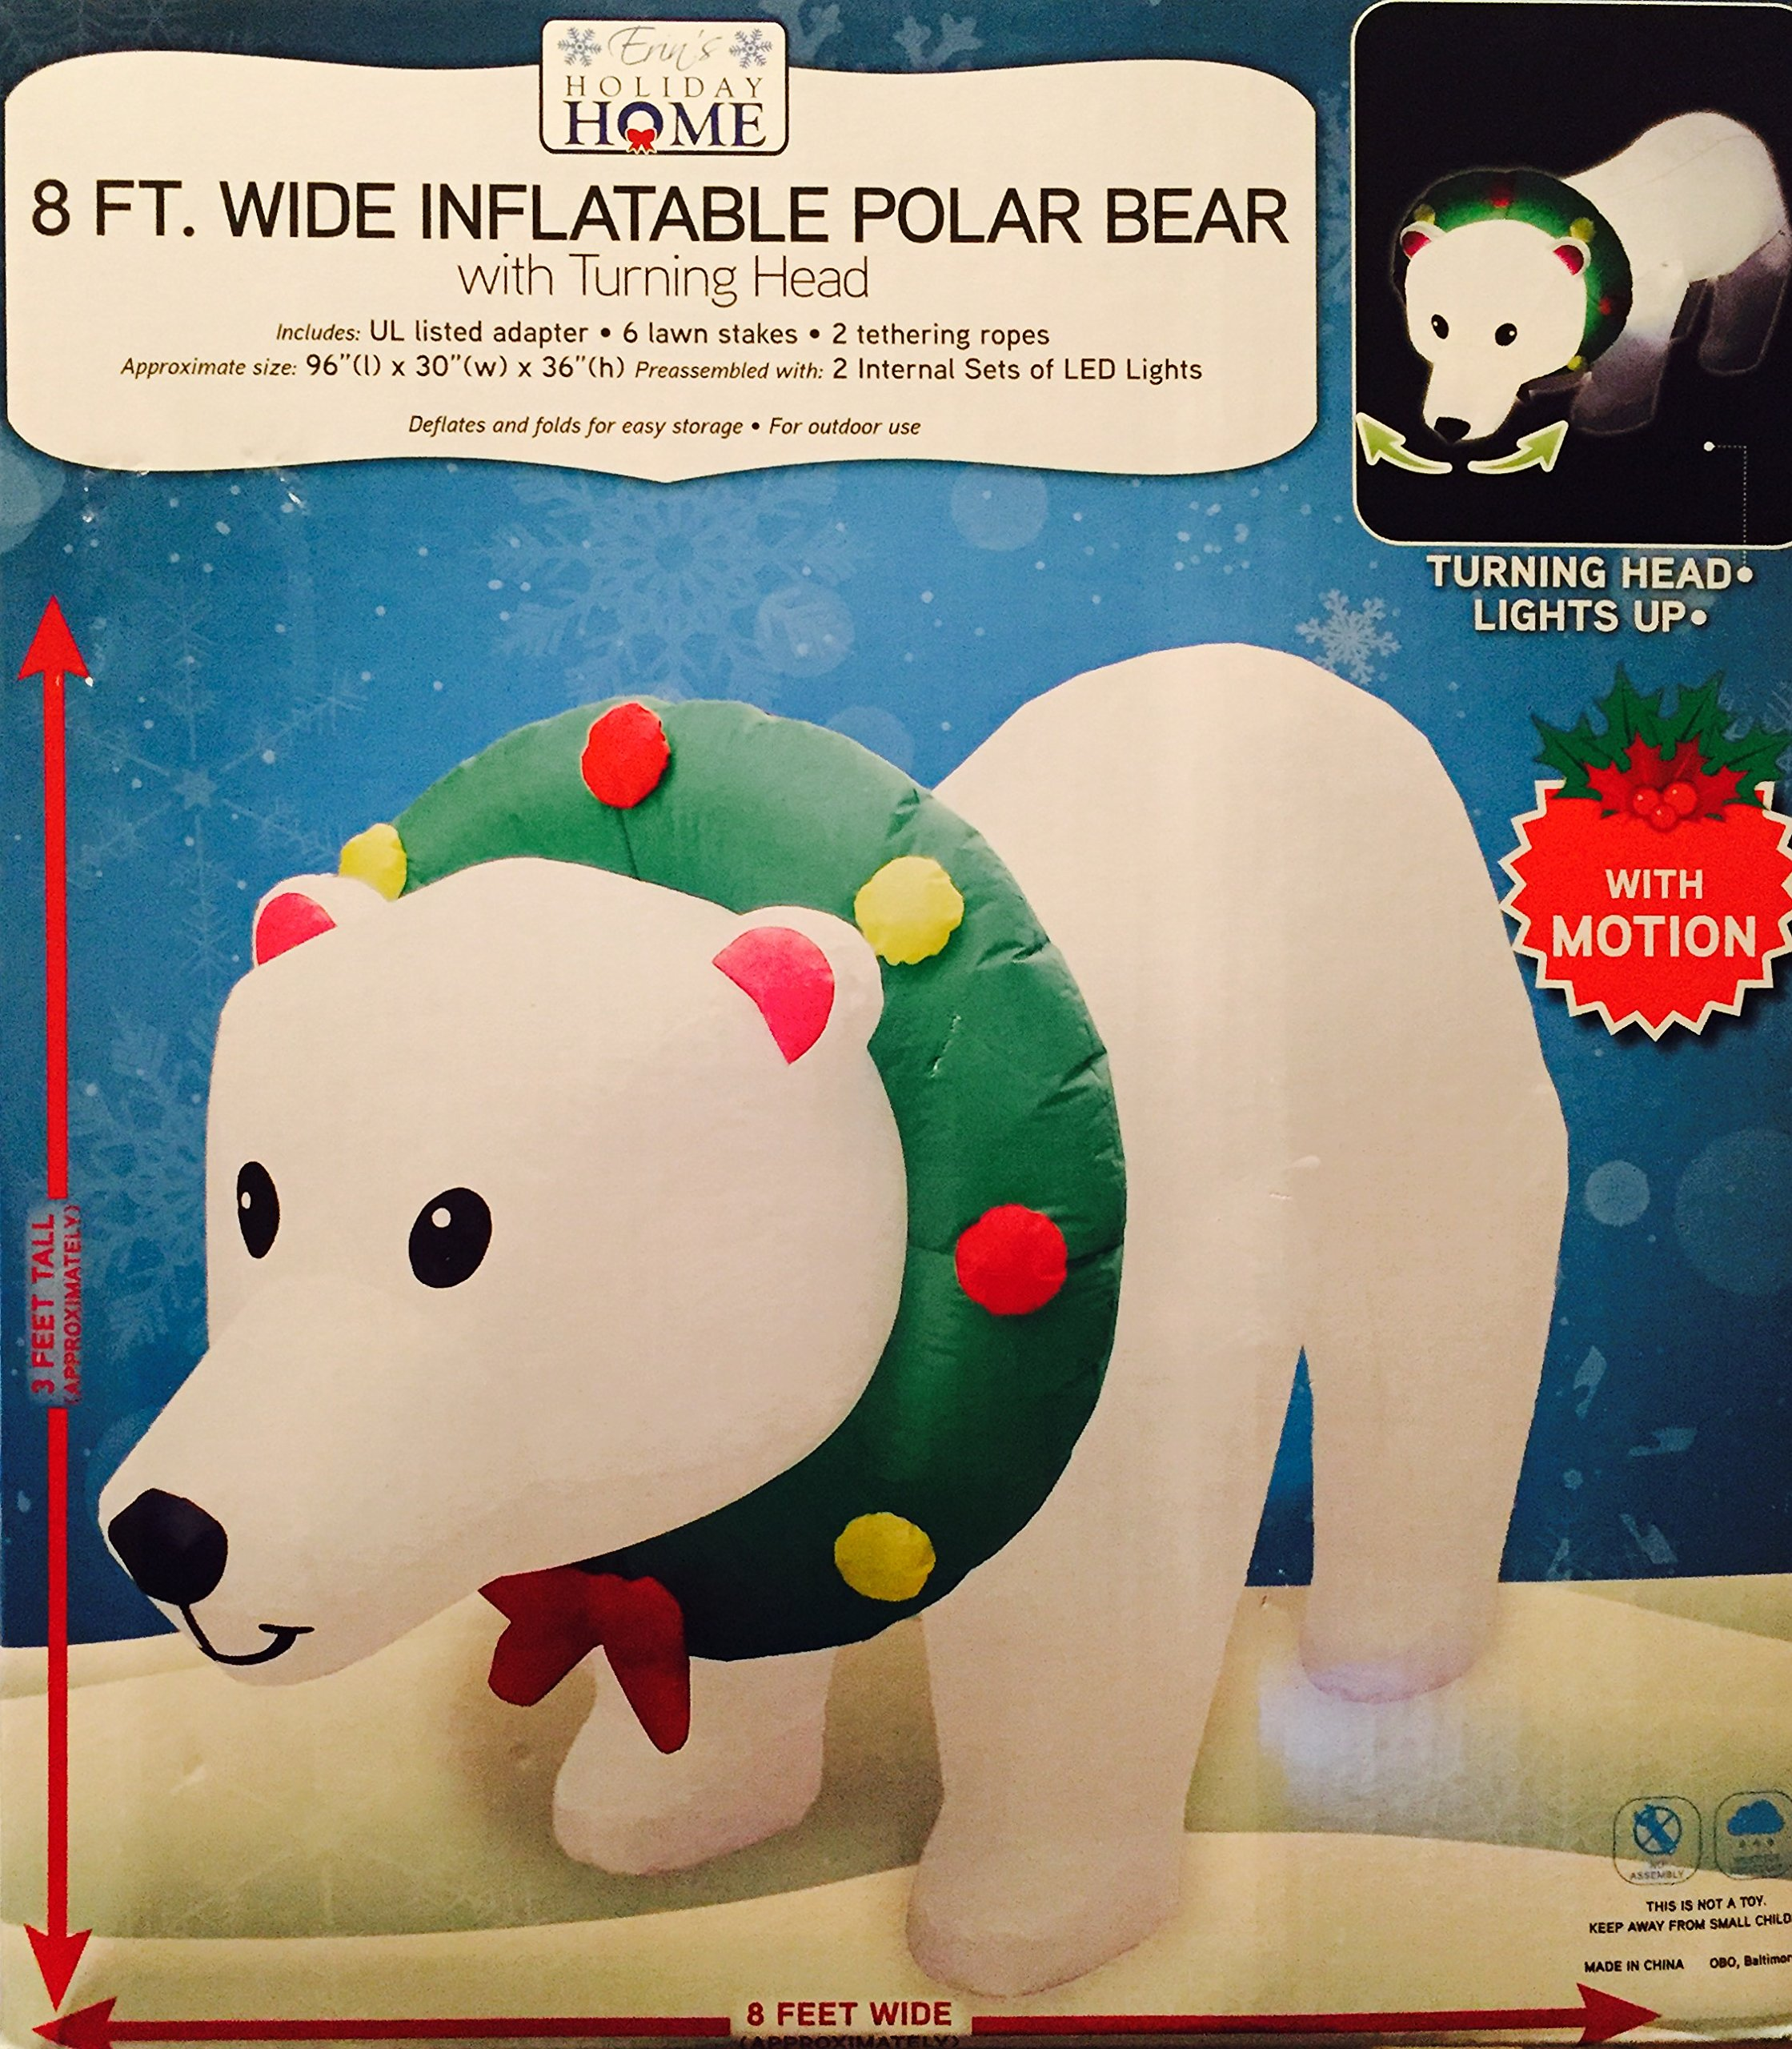 8 Ft Inflatable Polar Bear with LIGHTS and MOTION by Erin's Holiday Home